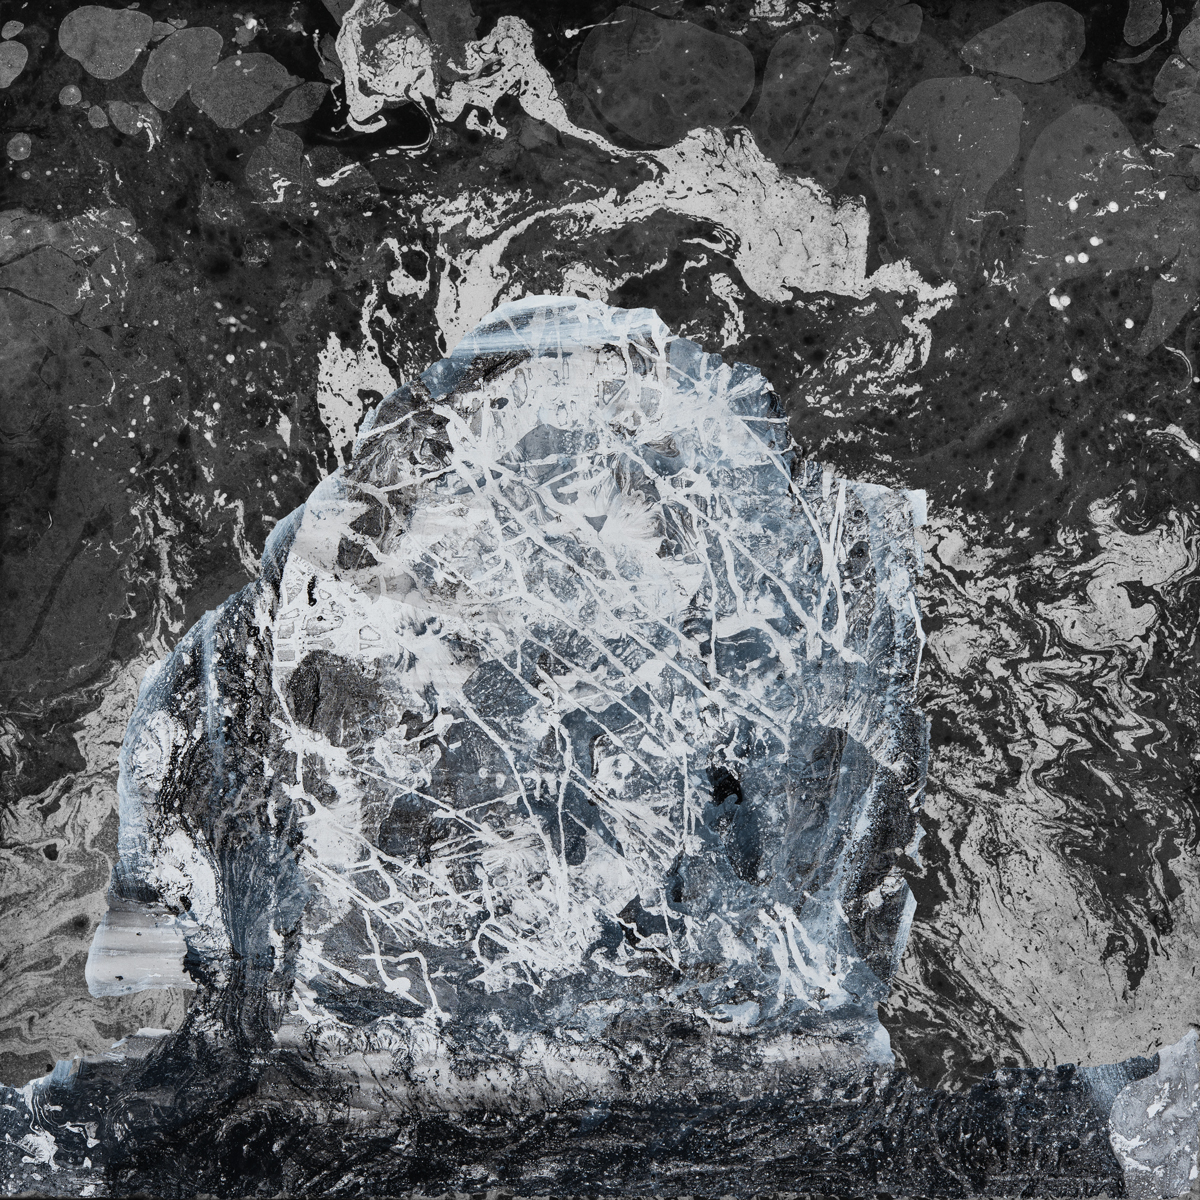 Omphalos and Skull 2 by Stanley Donwood